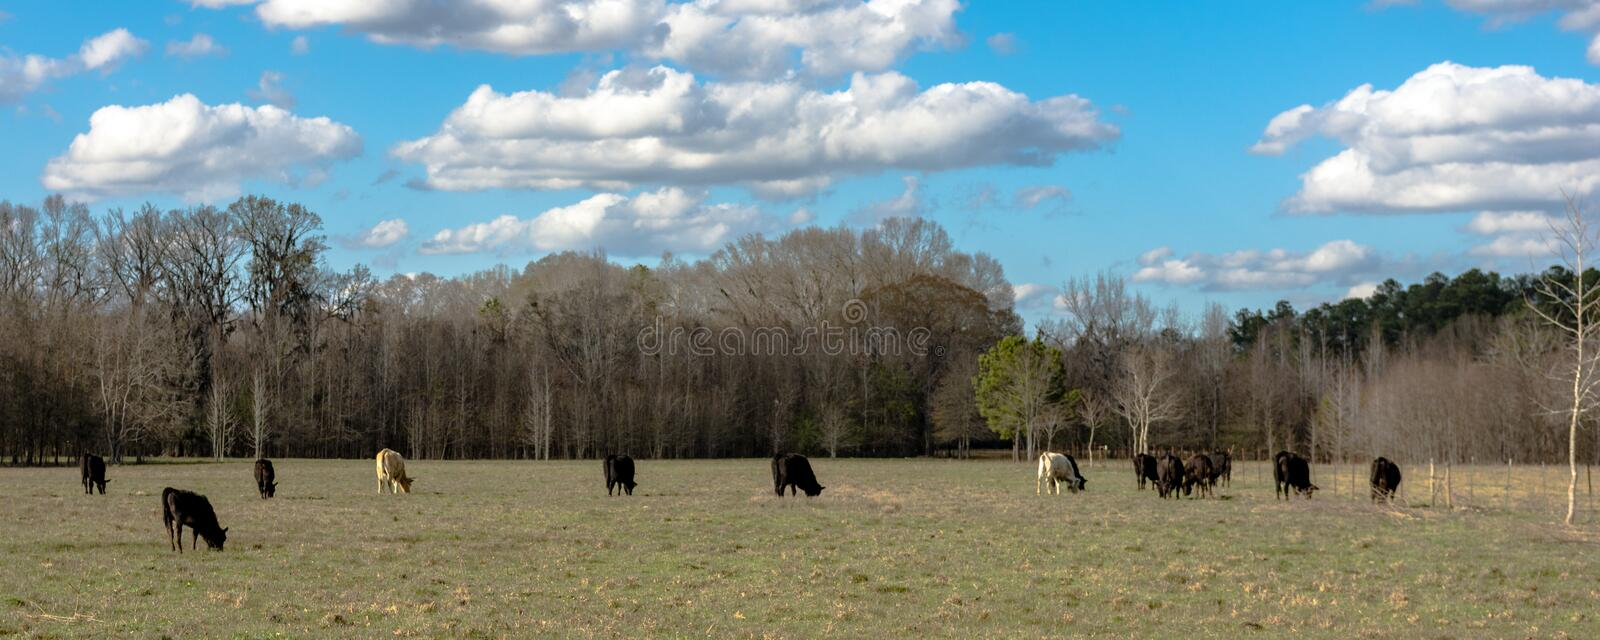 Panorama of cattle on early spring pasture. Panoramic view of beef cattle grazing on an early spring pasture with bare trees in the background and blue skies royalty free stock photography